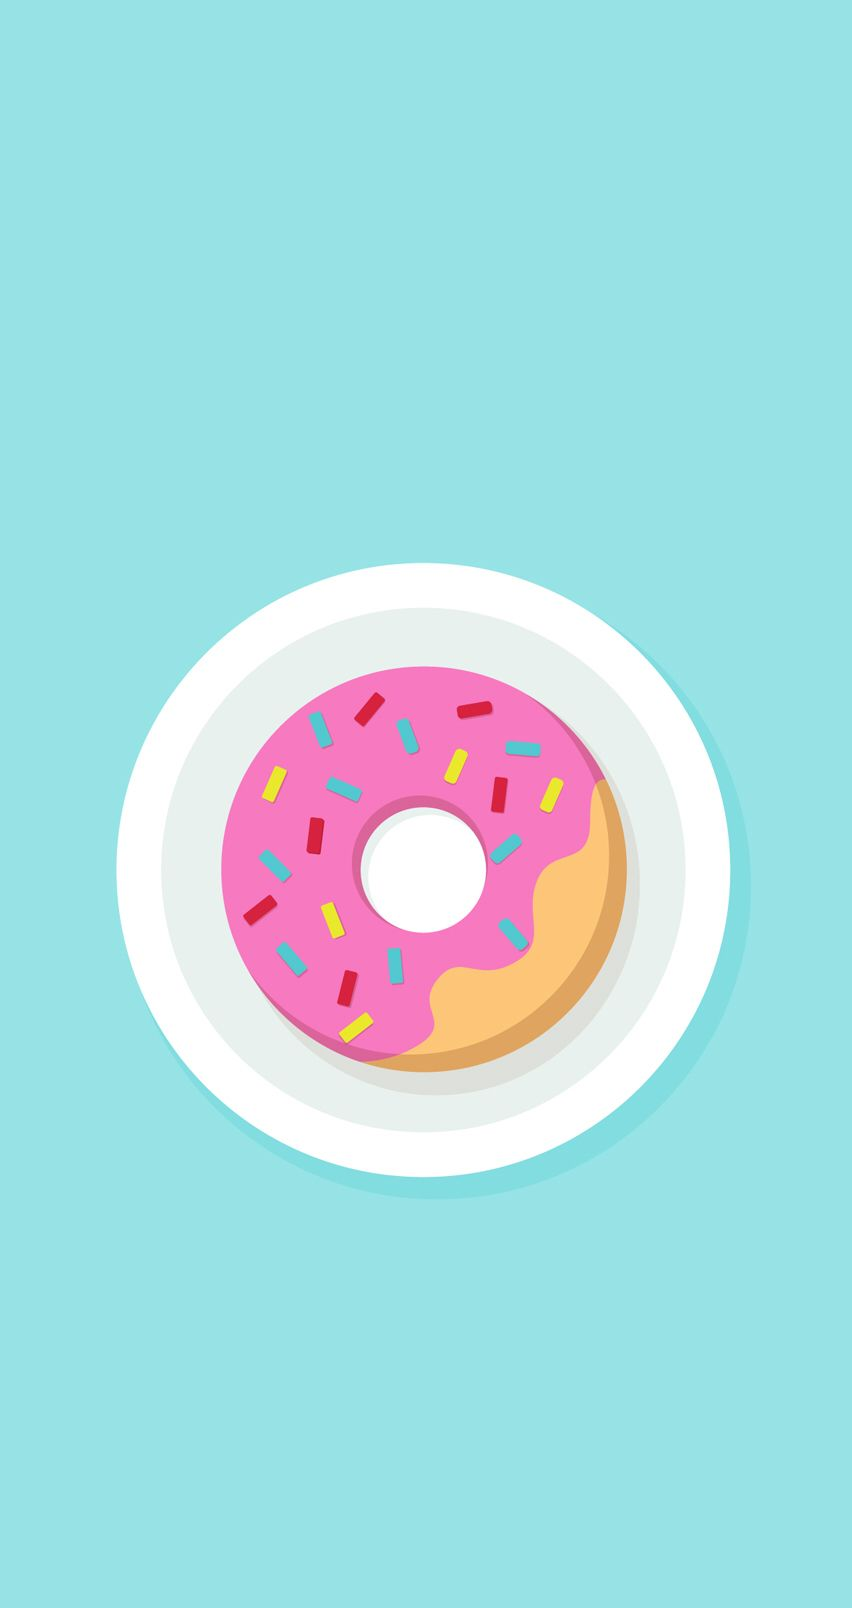 Picture Shared By Izip Izip Is A Great Zip File Management Tool On Your Mobile Devices I Have Used It And Really L Donut Art Print Wallpaper Iphone Wallpaper